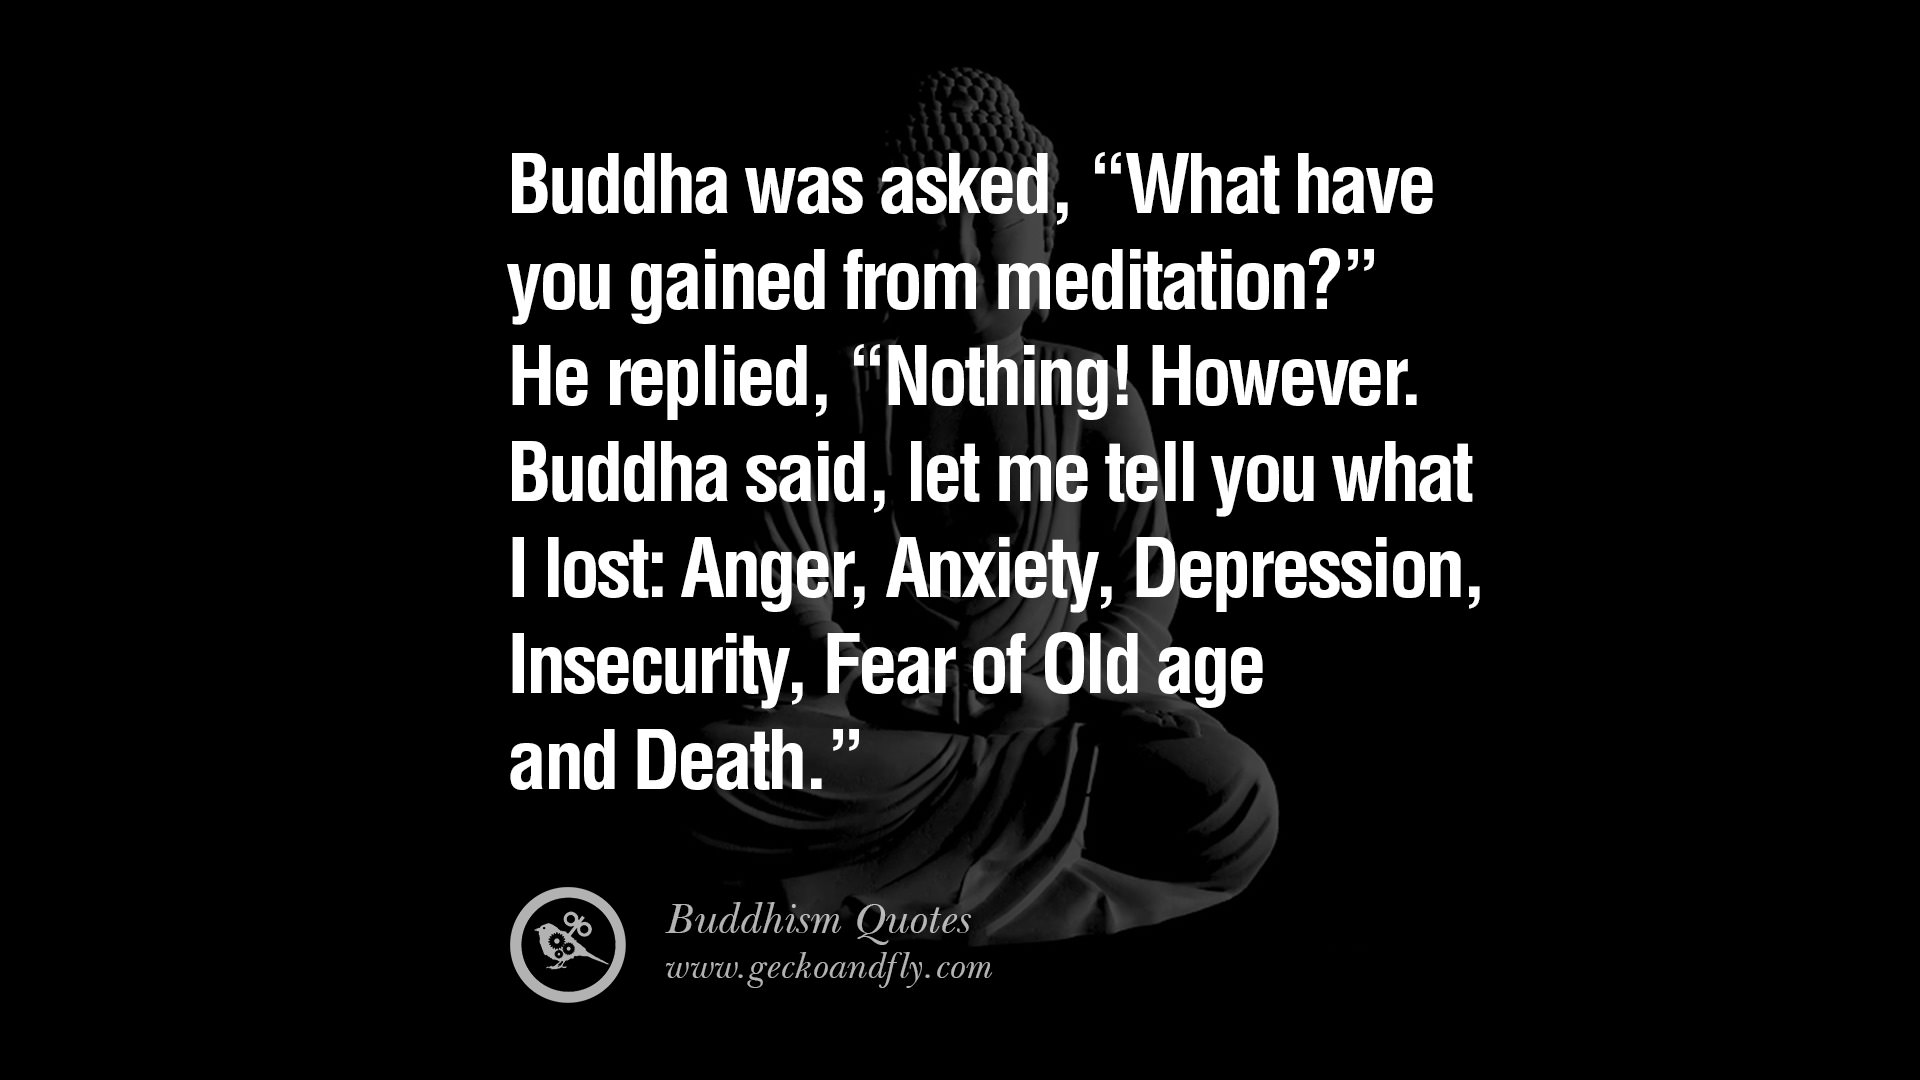 Buddha Quotes: 15 Zen Buddhism Quotes On Love, Anger Management And Salvation